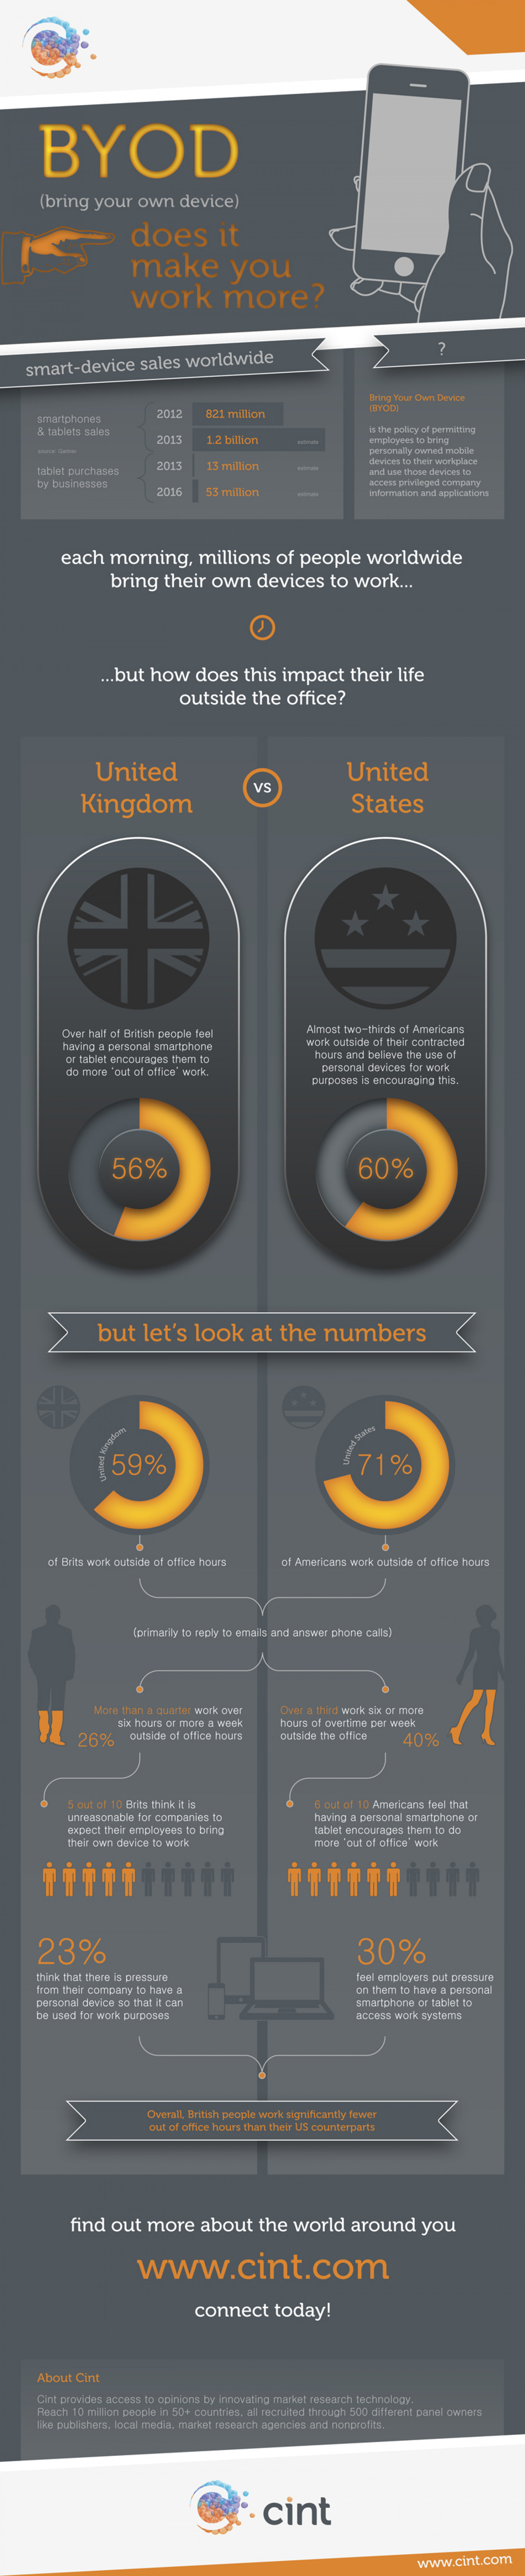 BYOD - Does it make you work more? Infographic